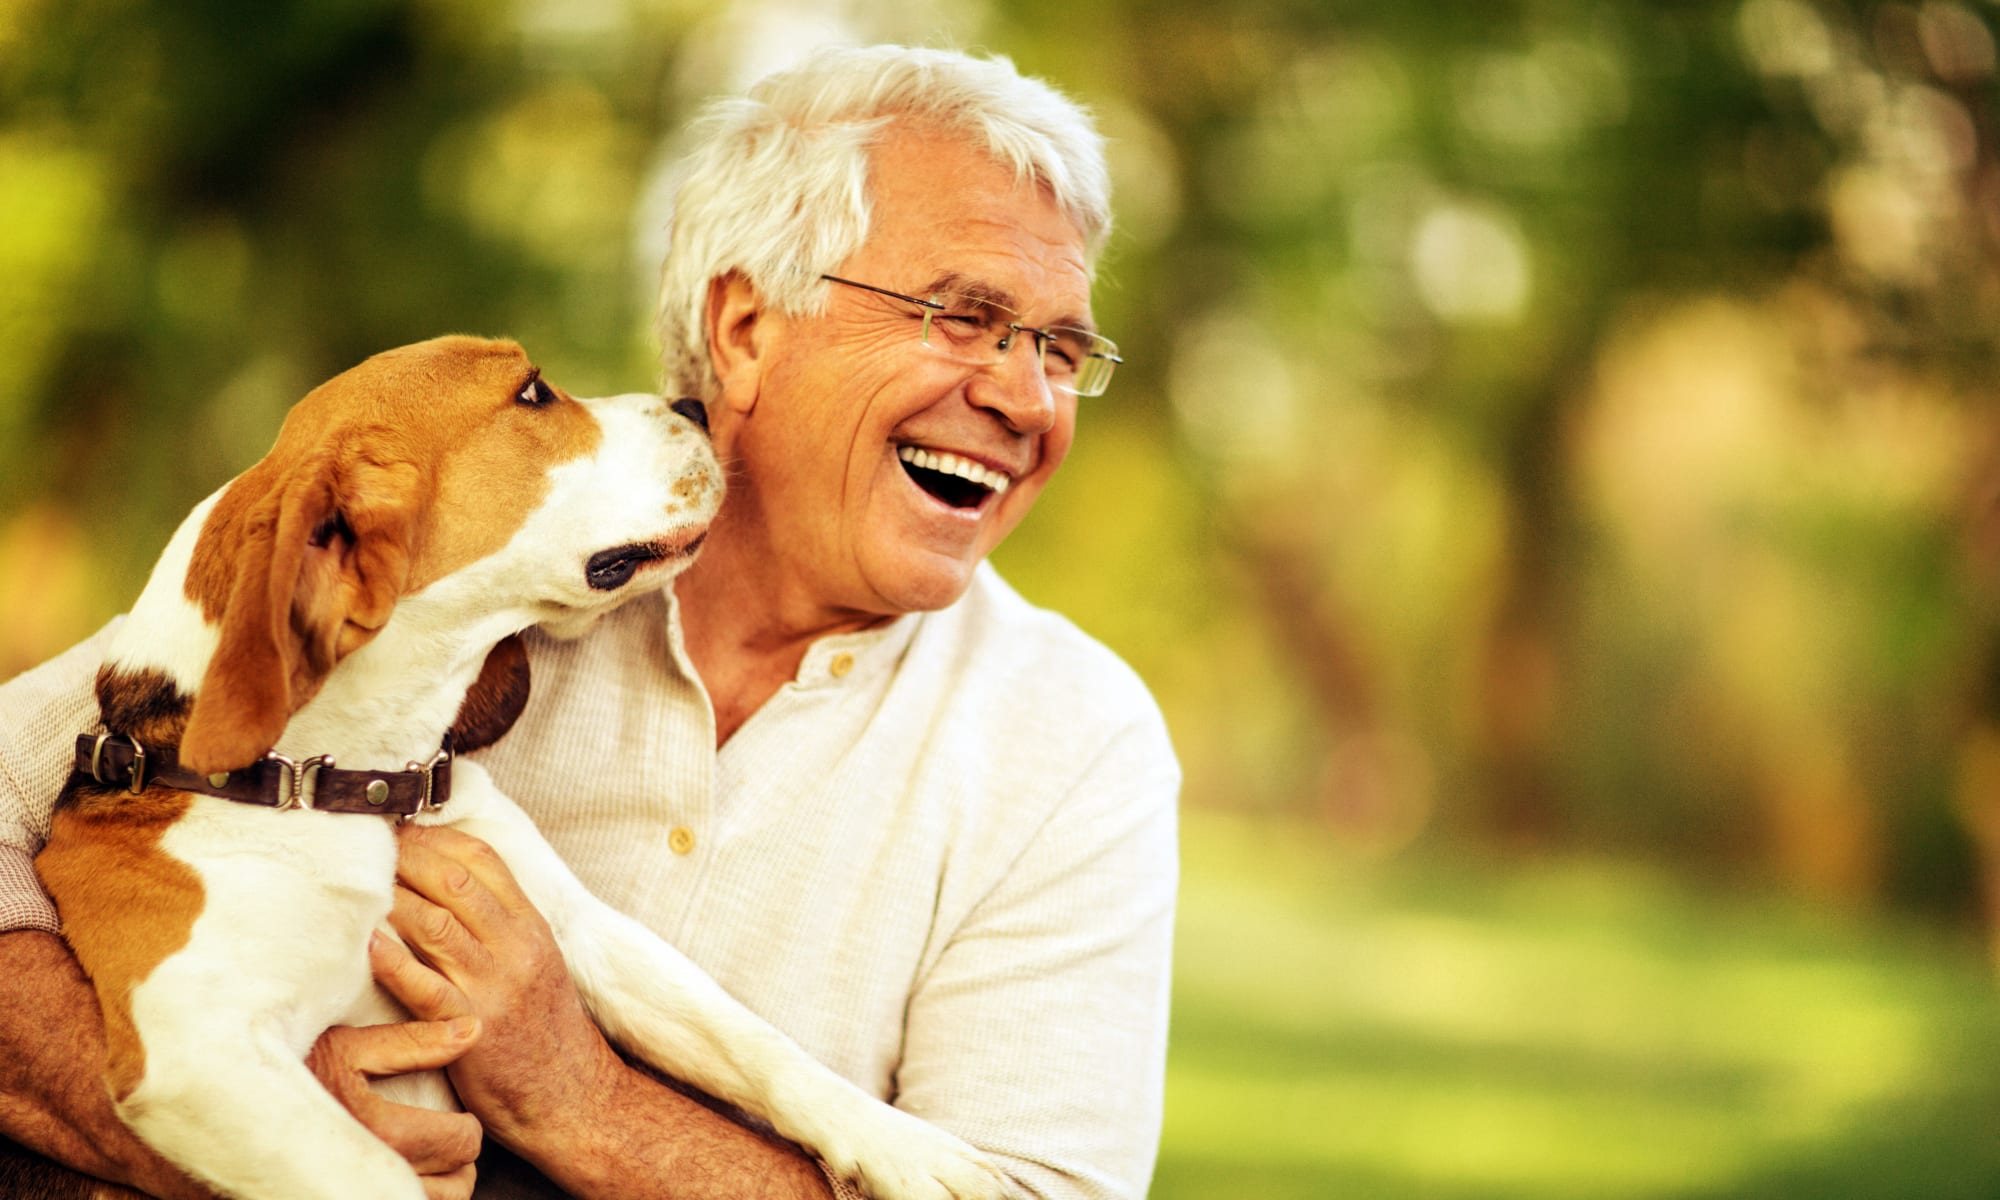 Man with a dog at Retirement Center Management in Houston, Texas